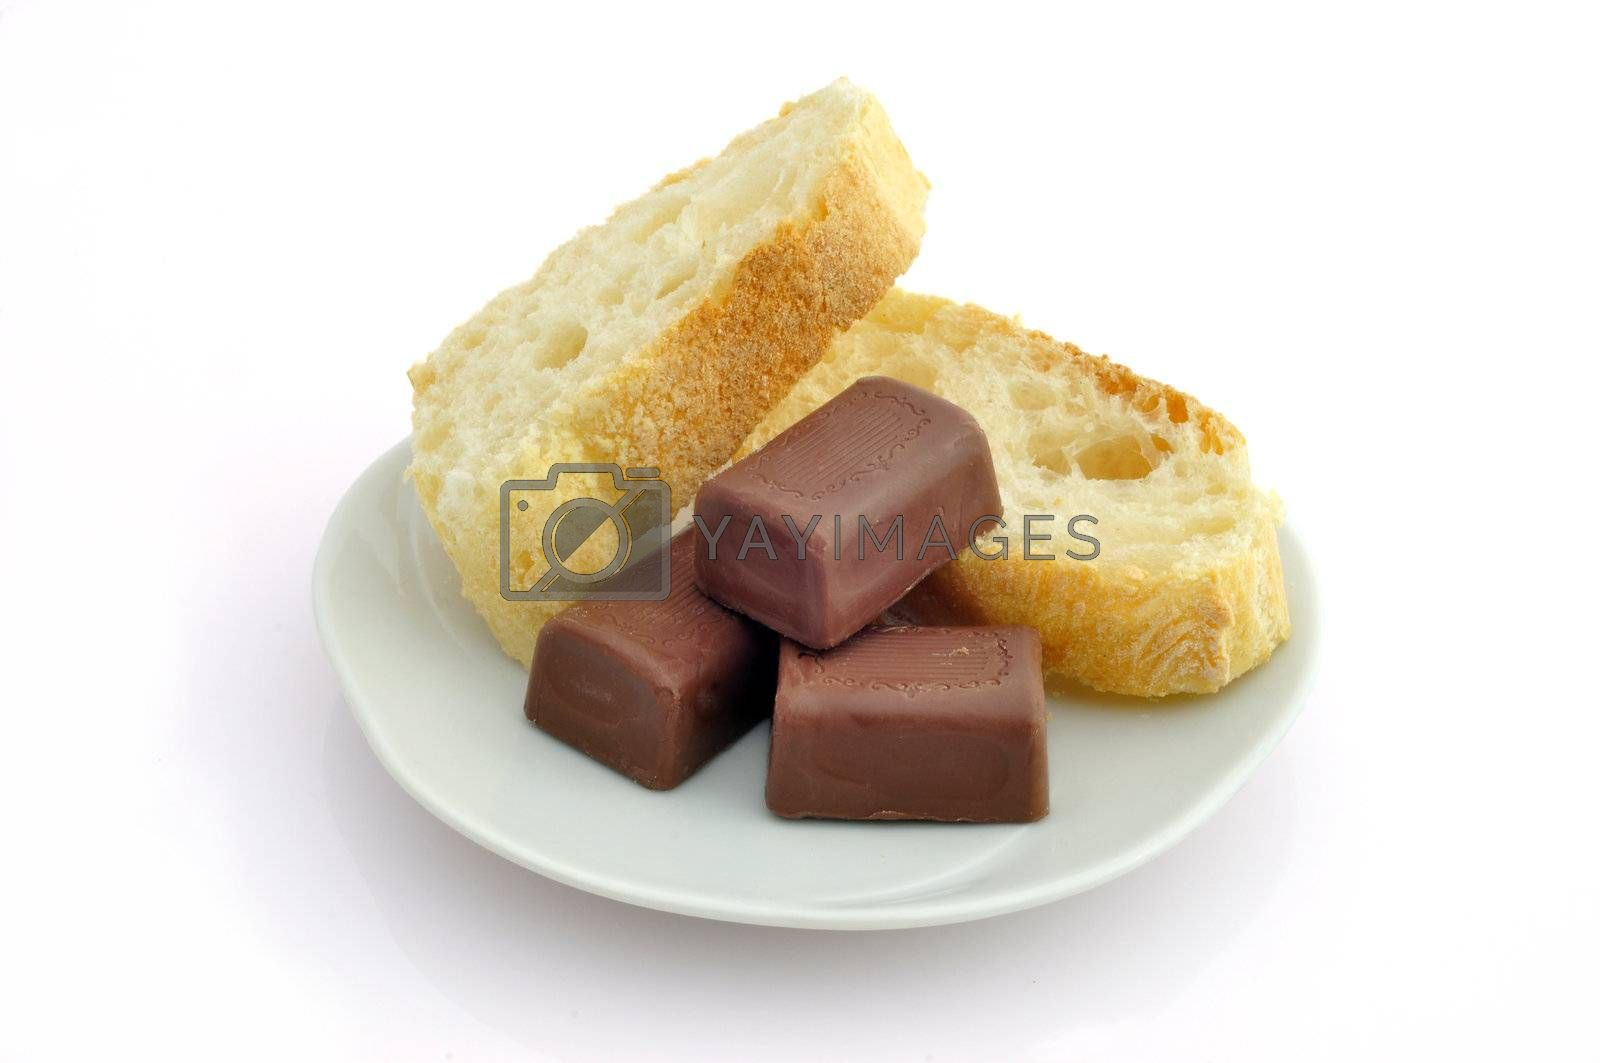 Bread and chocolate on a plate on a white background